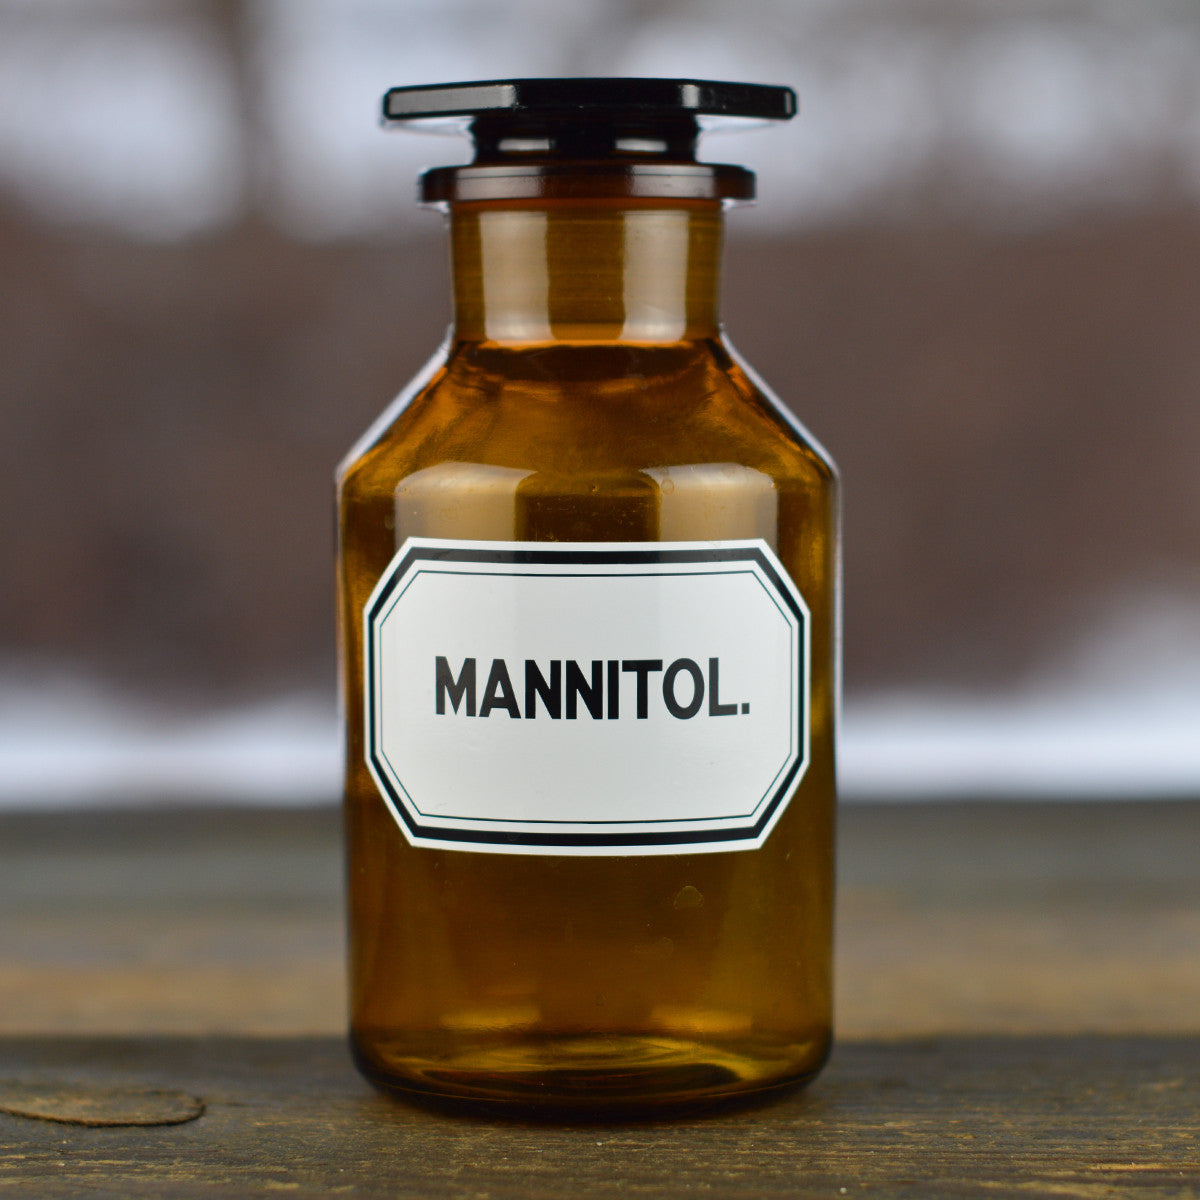 Vintage 1930's - 1940's Apothecary Jar with Latin Label MANNITOL. and Hexagon Stopper